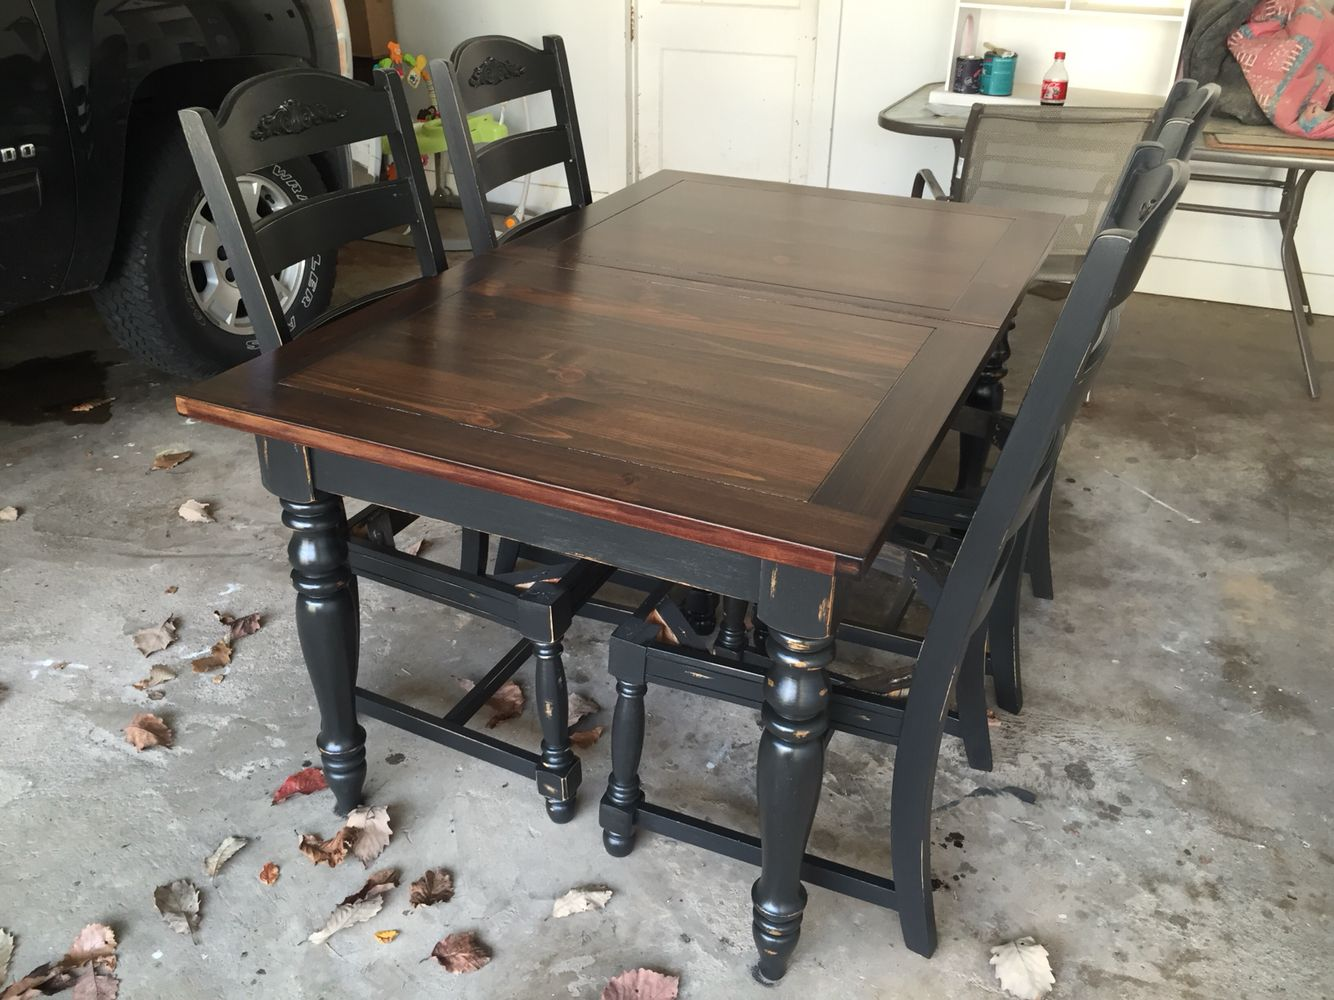 Refinished Oak Table Base And Chairs Chalk Painted Black Velvet And Sealed With Polycrylic Coats Top Stained In Dark Walnut